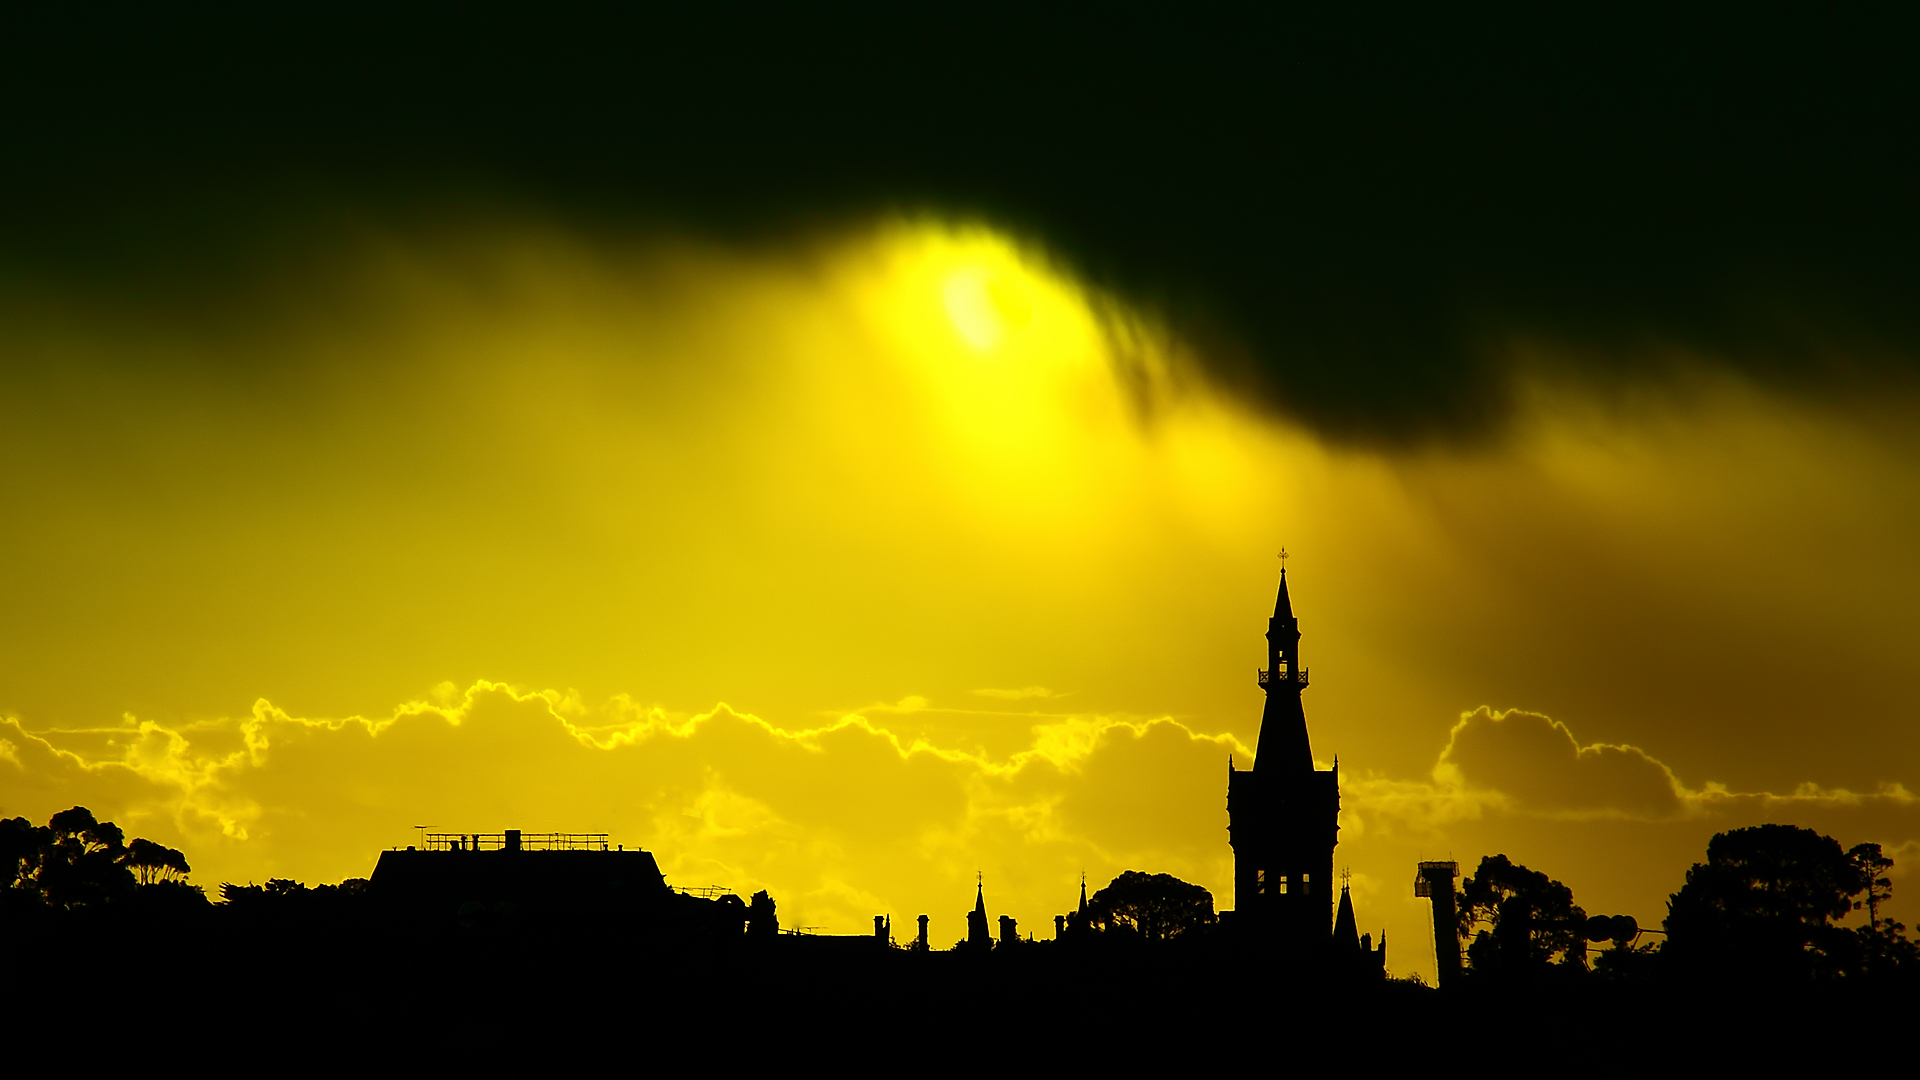 cool yellow high definition - photo #22